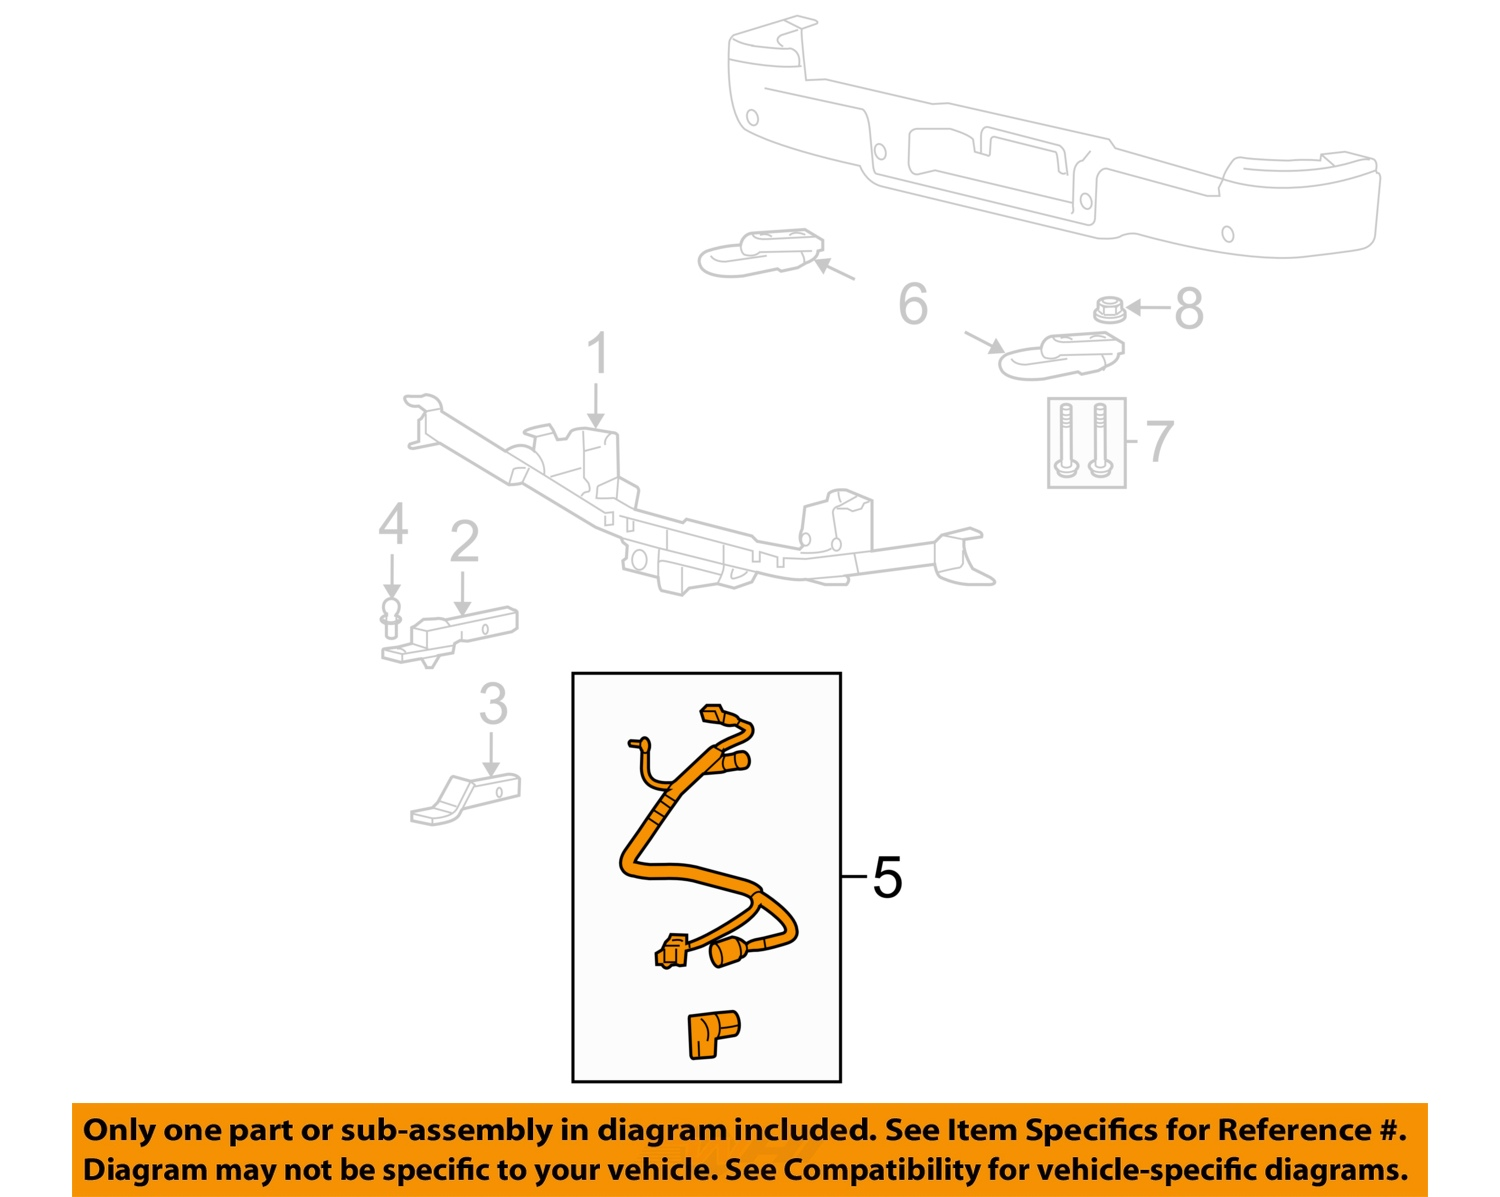 2007 ford f150 wiring diagram 2002 chevy trailblazer parts oem 7 pin connector to trailer harness 05 07 f